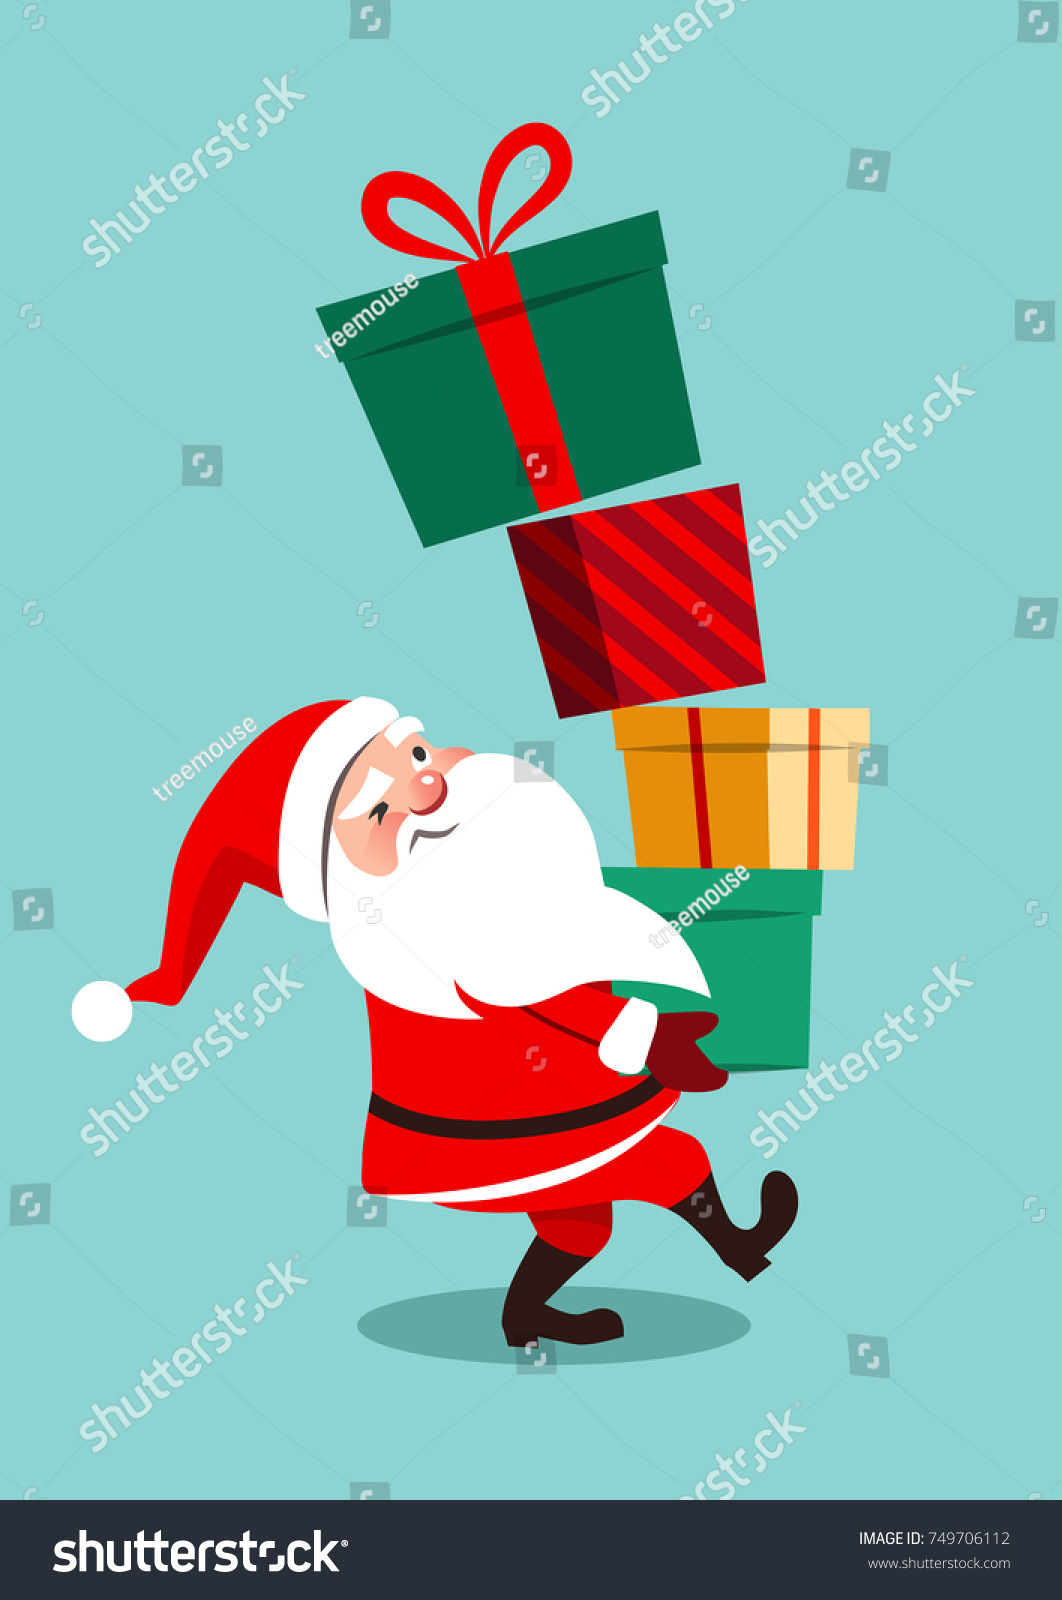 Vector cartoon illustration funny anxious looking stock vector vector cartoon illustration of funny anxious looking santa claus carrying a tall stack of colorful gift negle Gallery